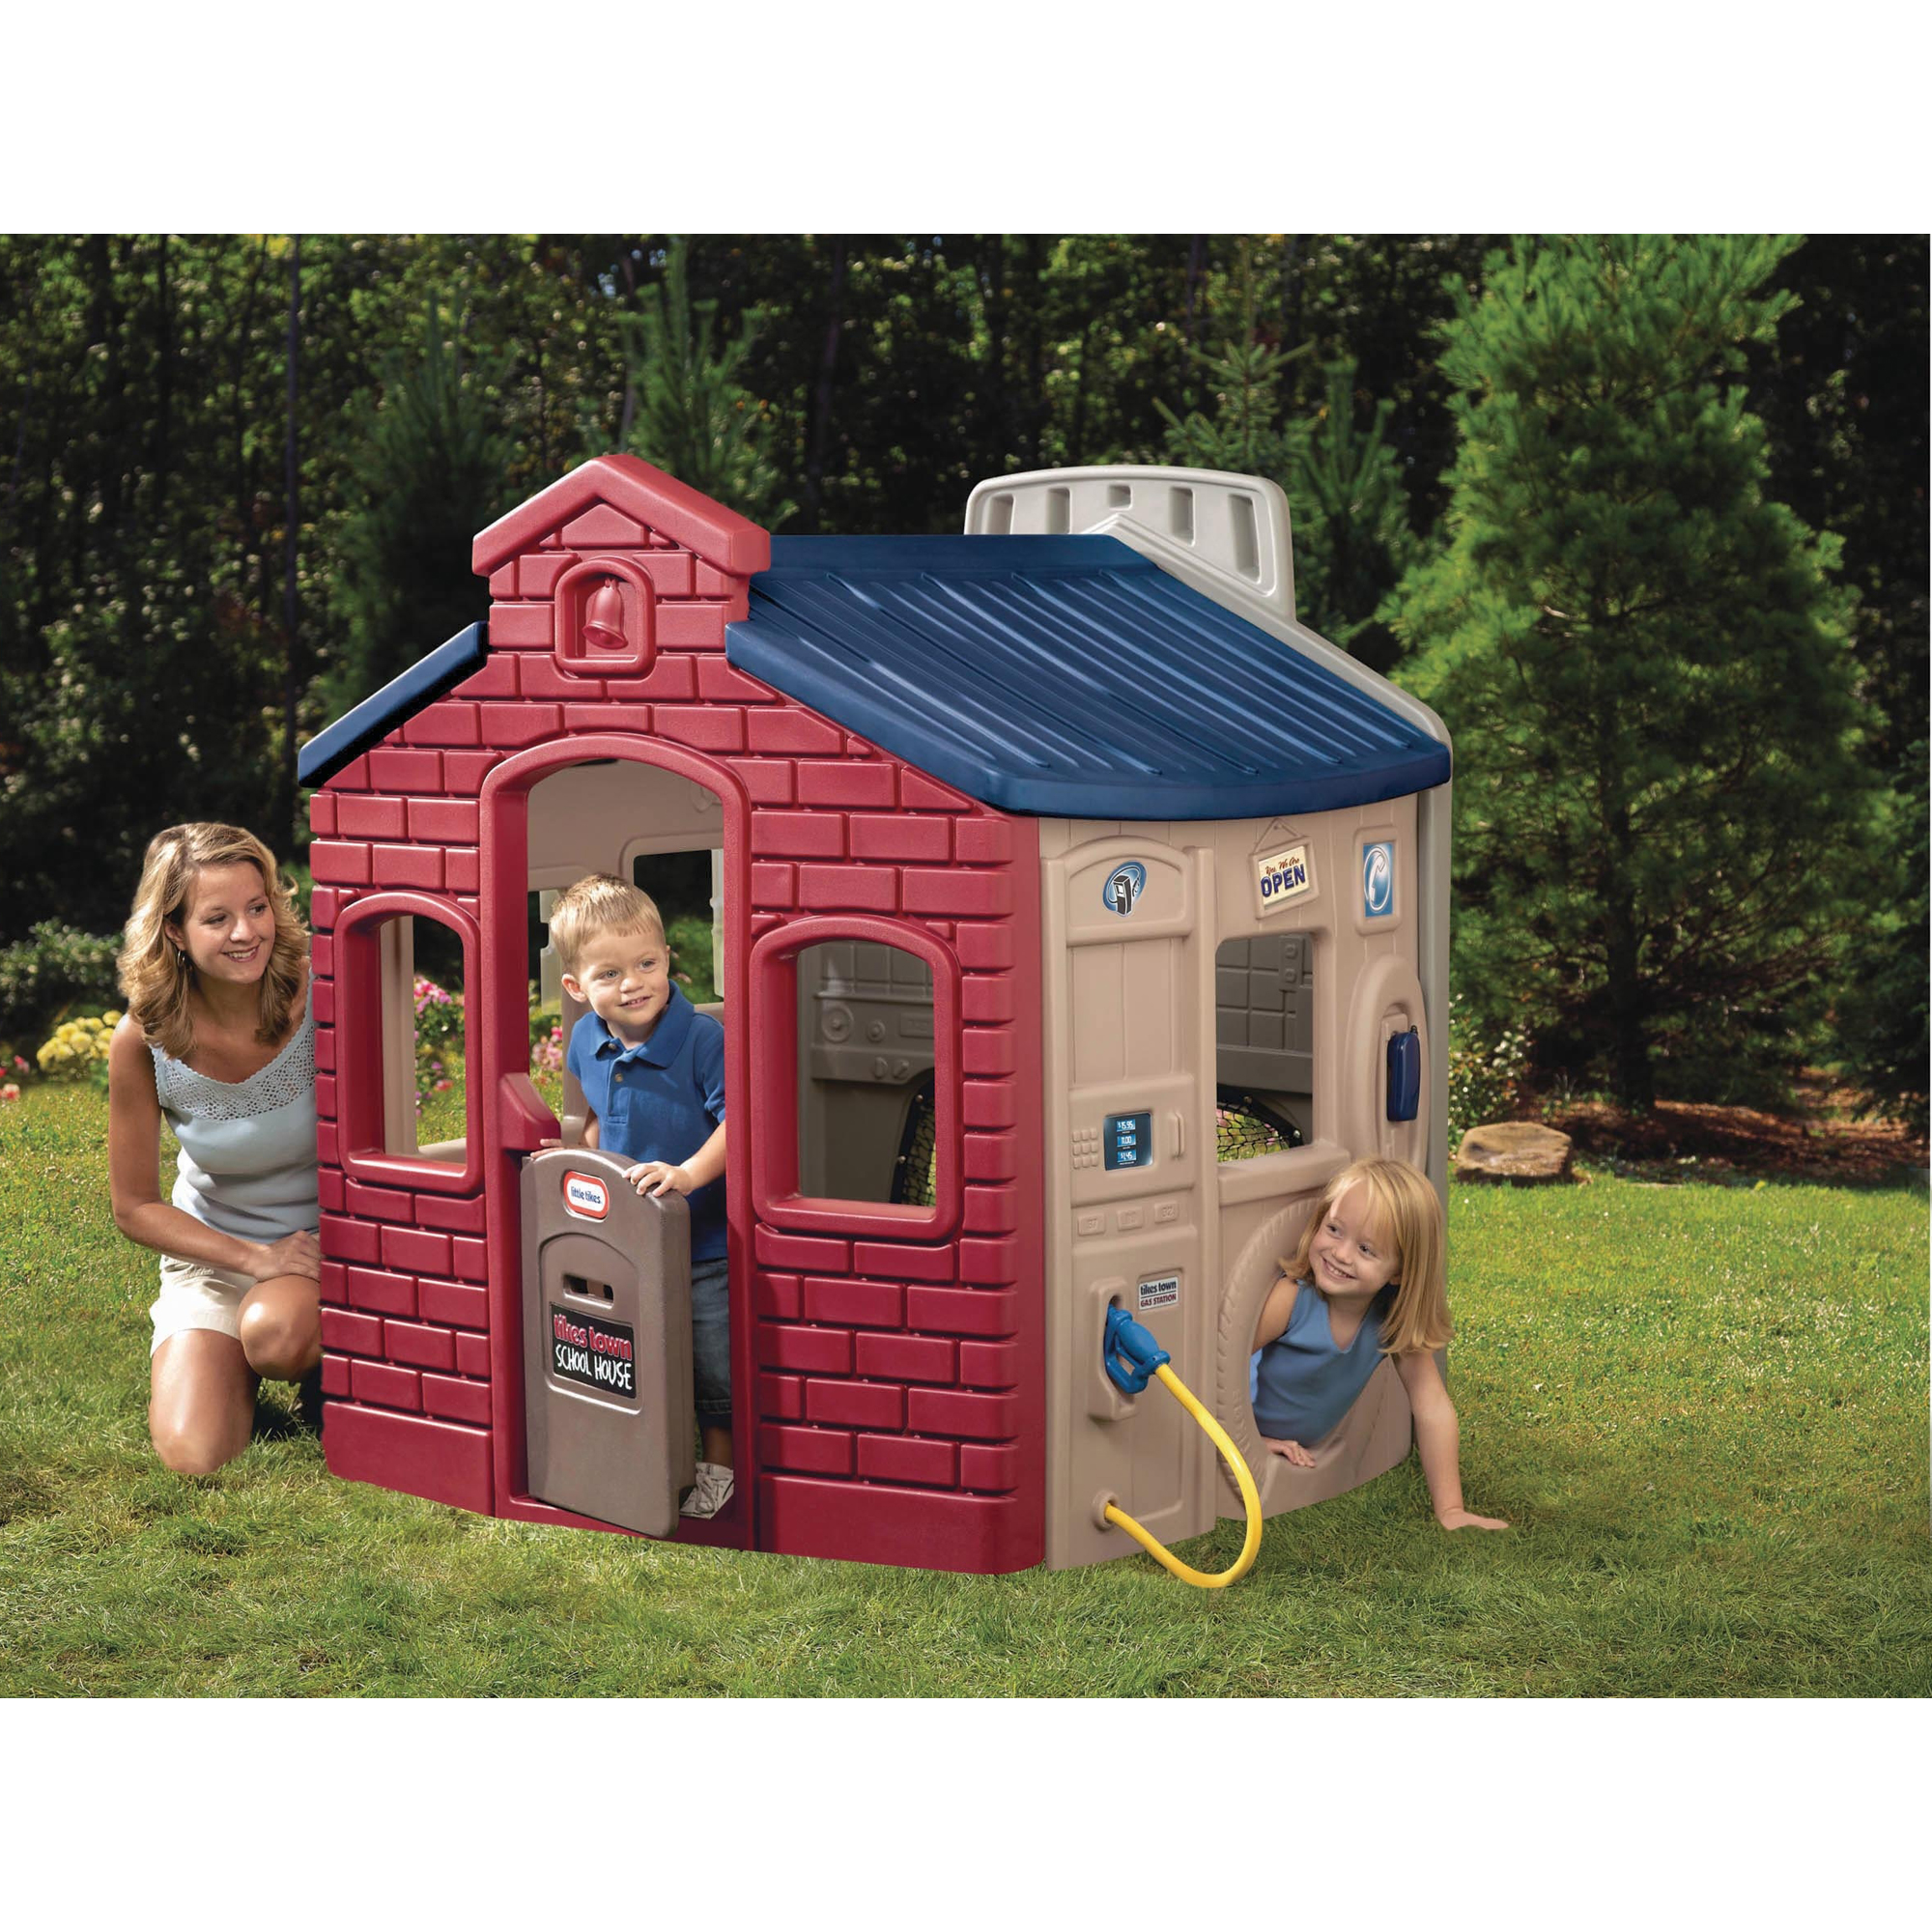 Little Tikes Tikes Earth Town Playhouse - Children's Birthday Your Kids Bday - 2nd Birthday